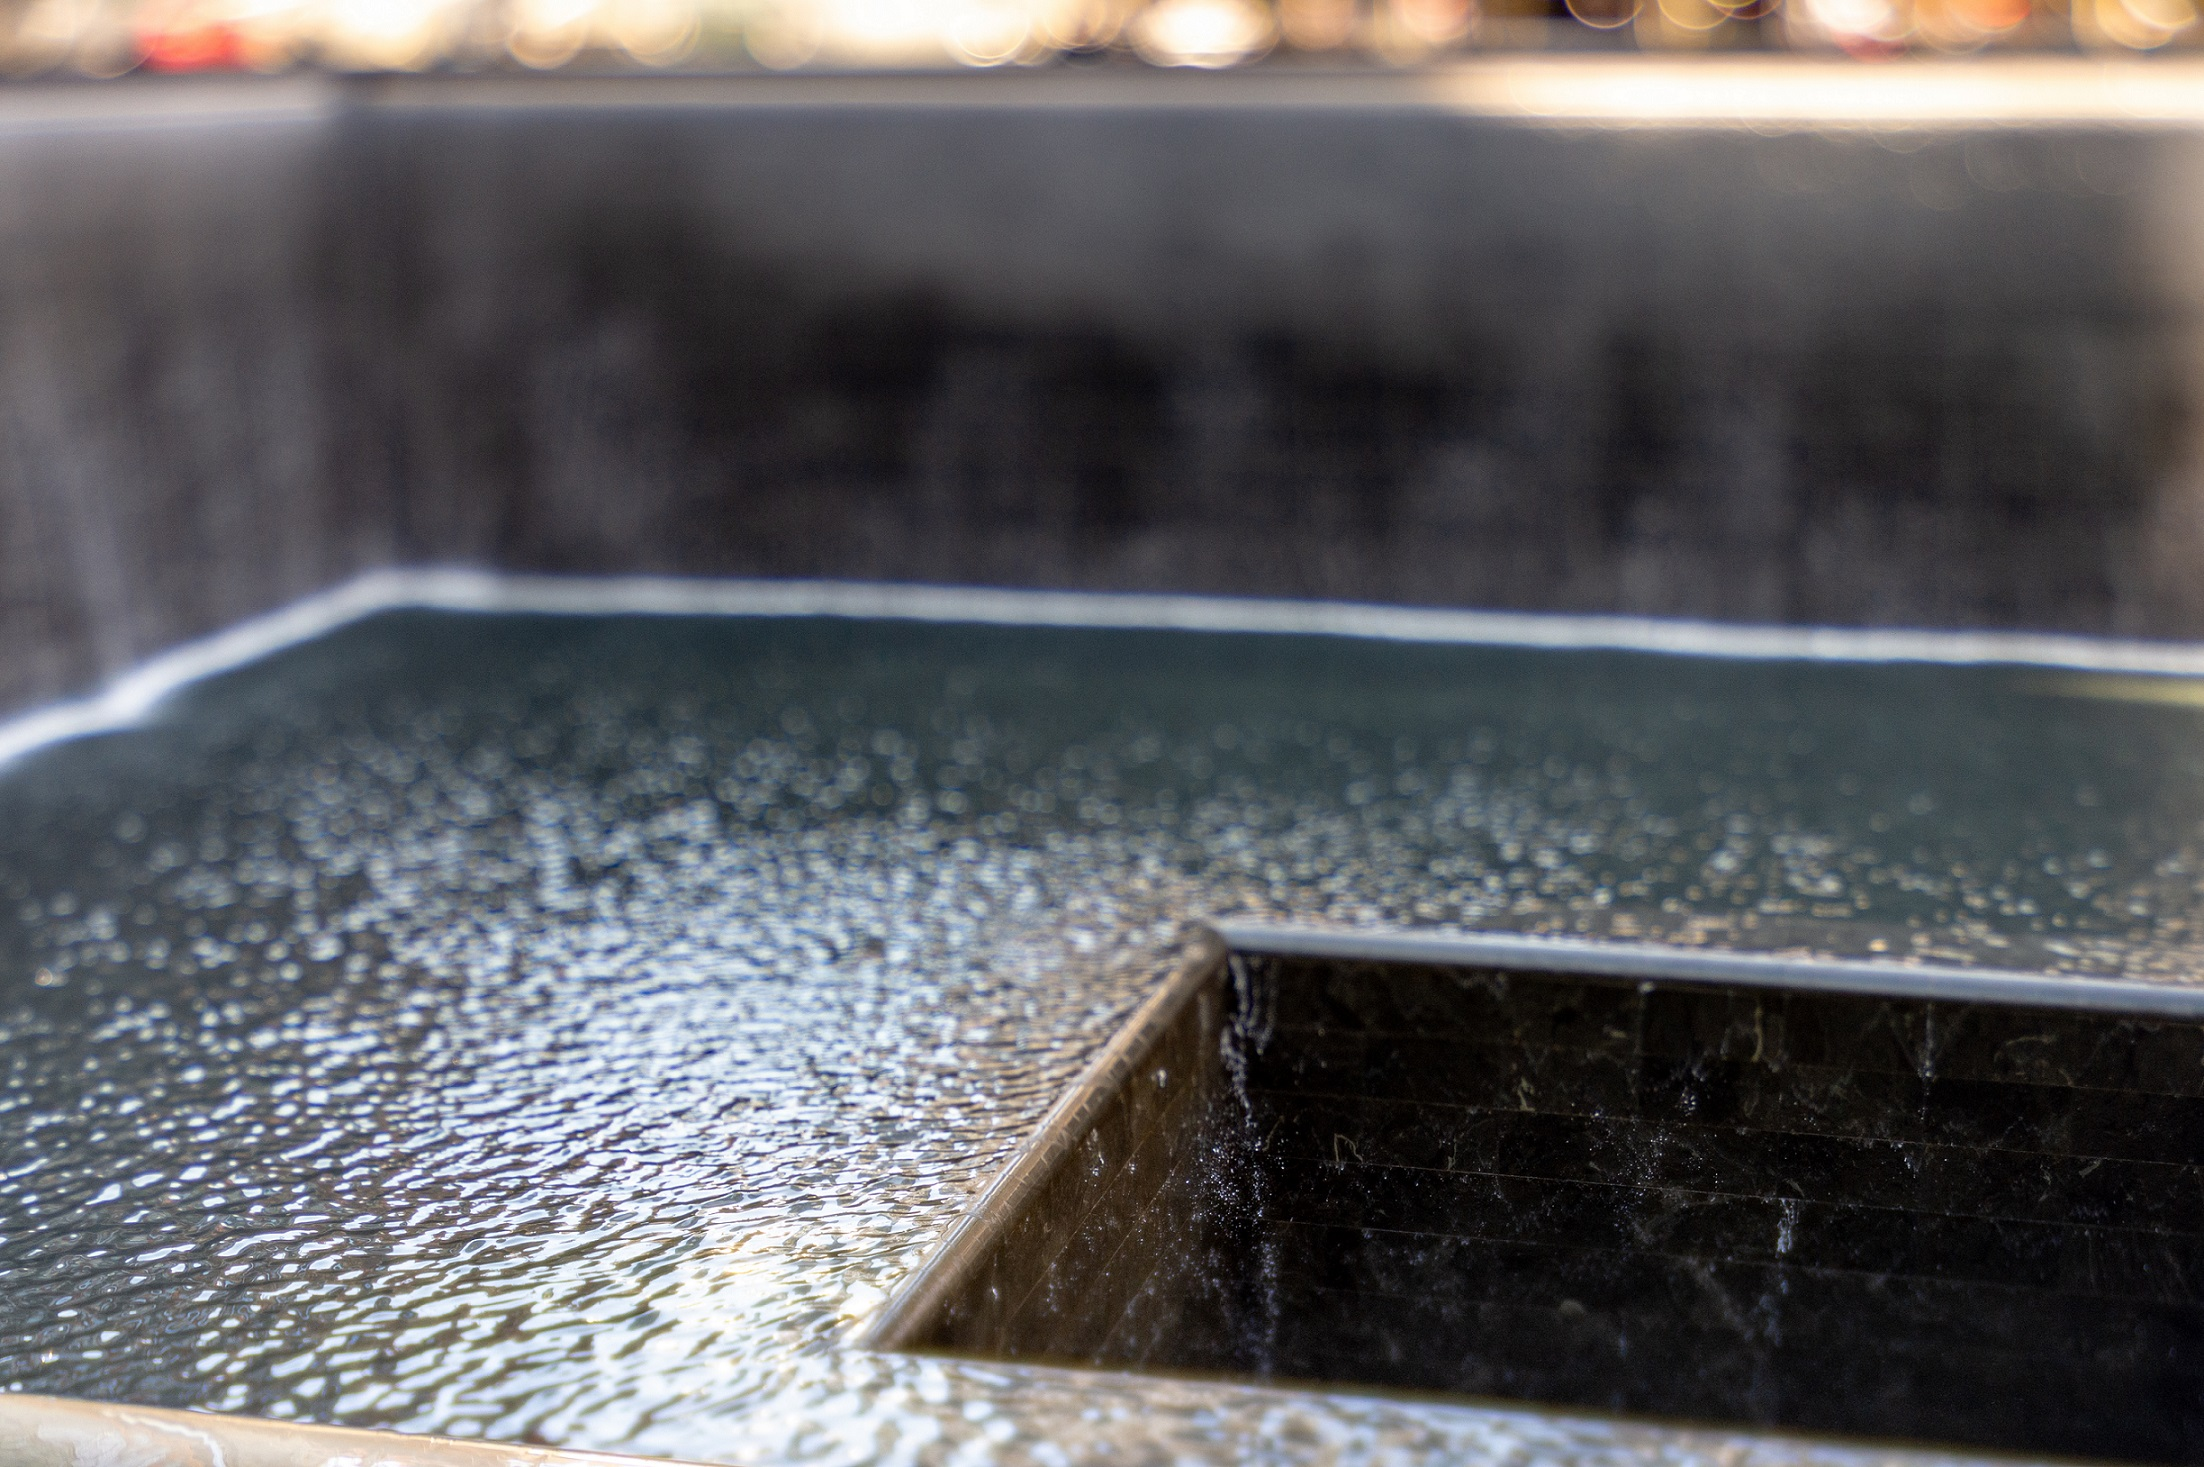 Water flows down two walls and disappears into a void at the center of a Memorial reflecting pool. Sunlight creates shadows on the pooled water.